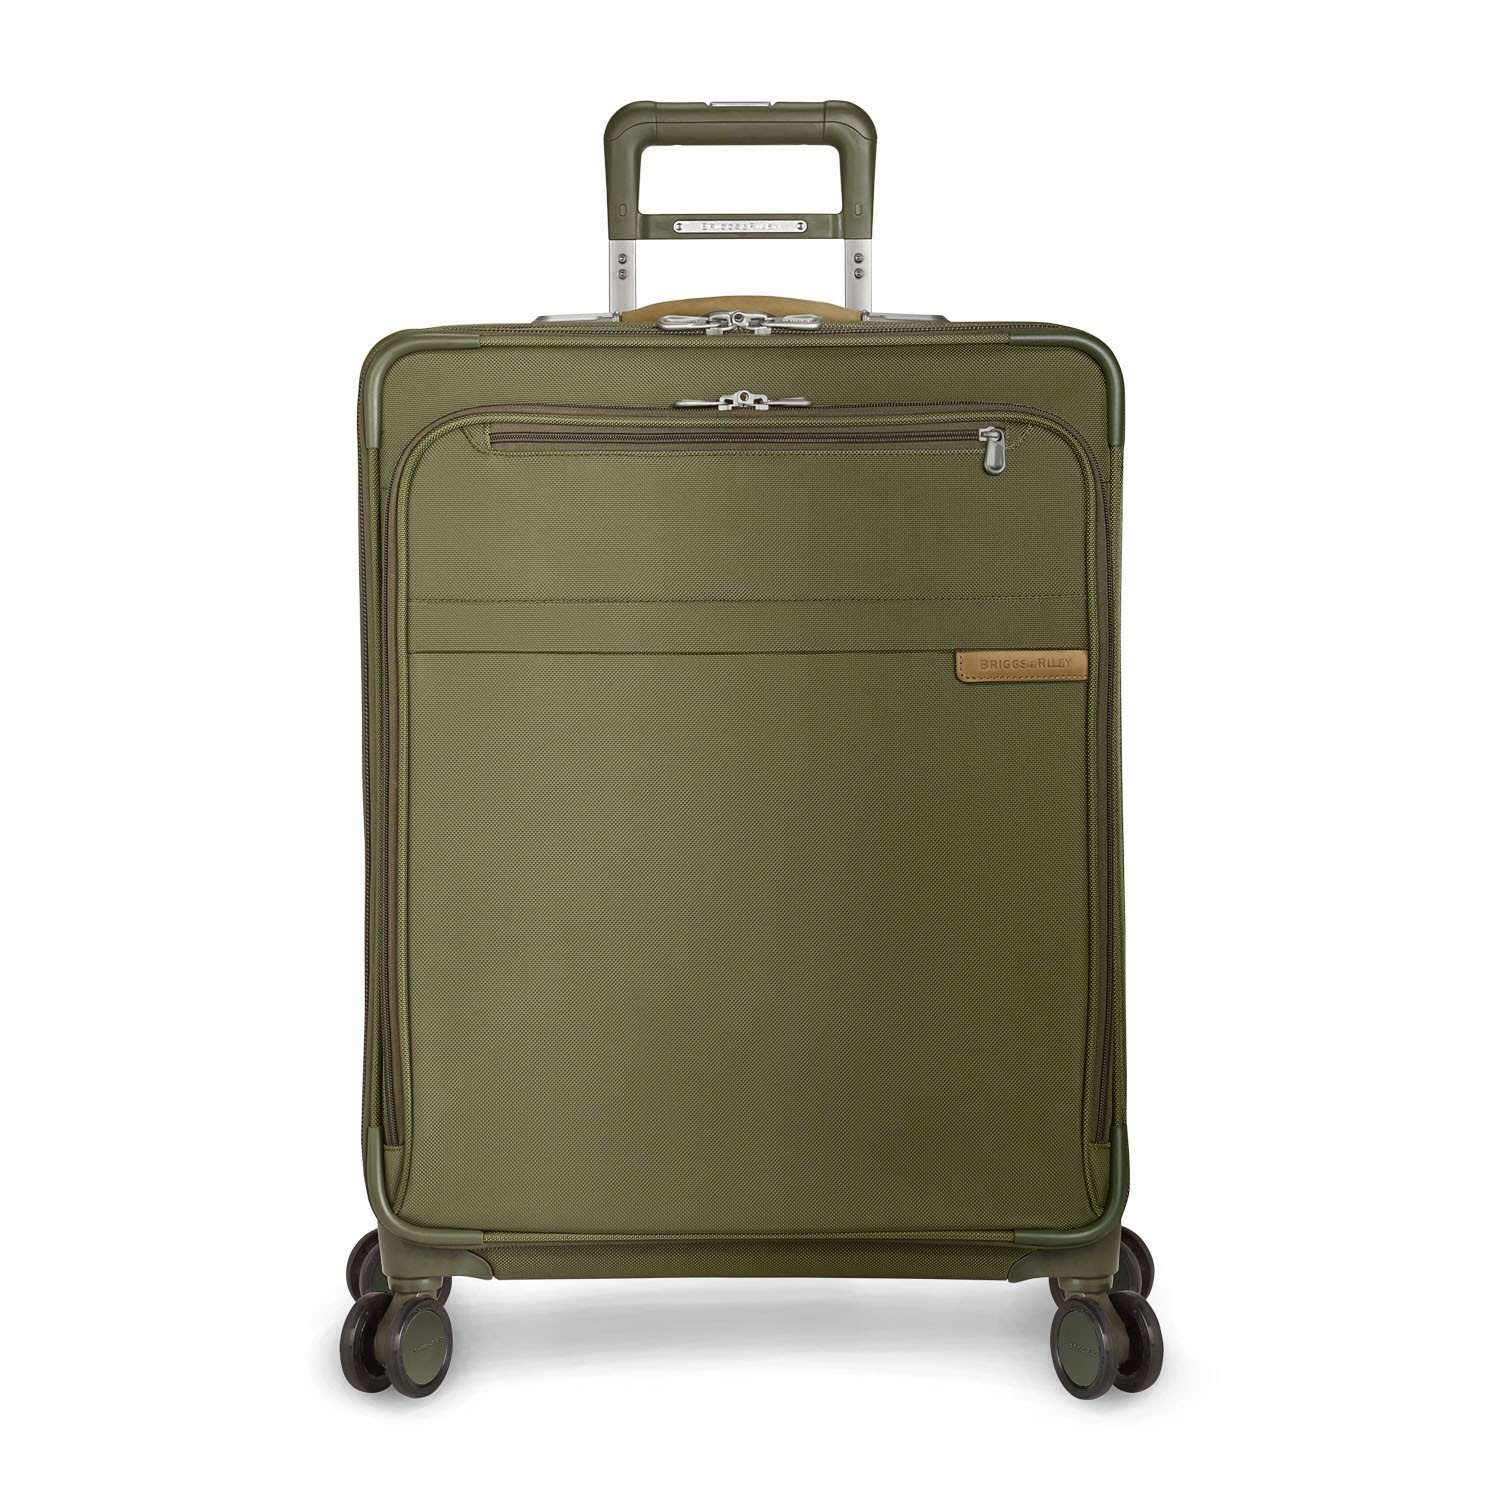 Briggs & Riley expandable luggage